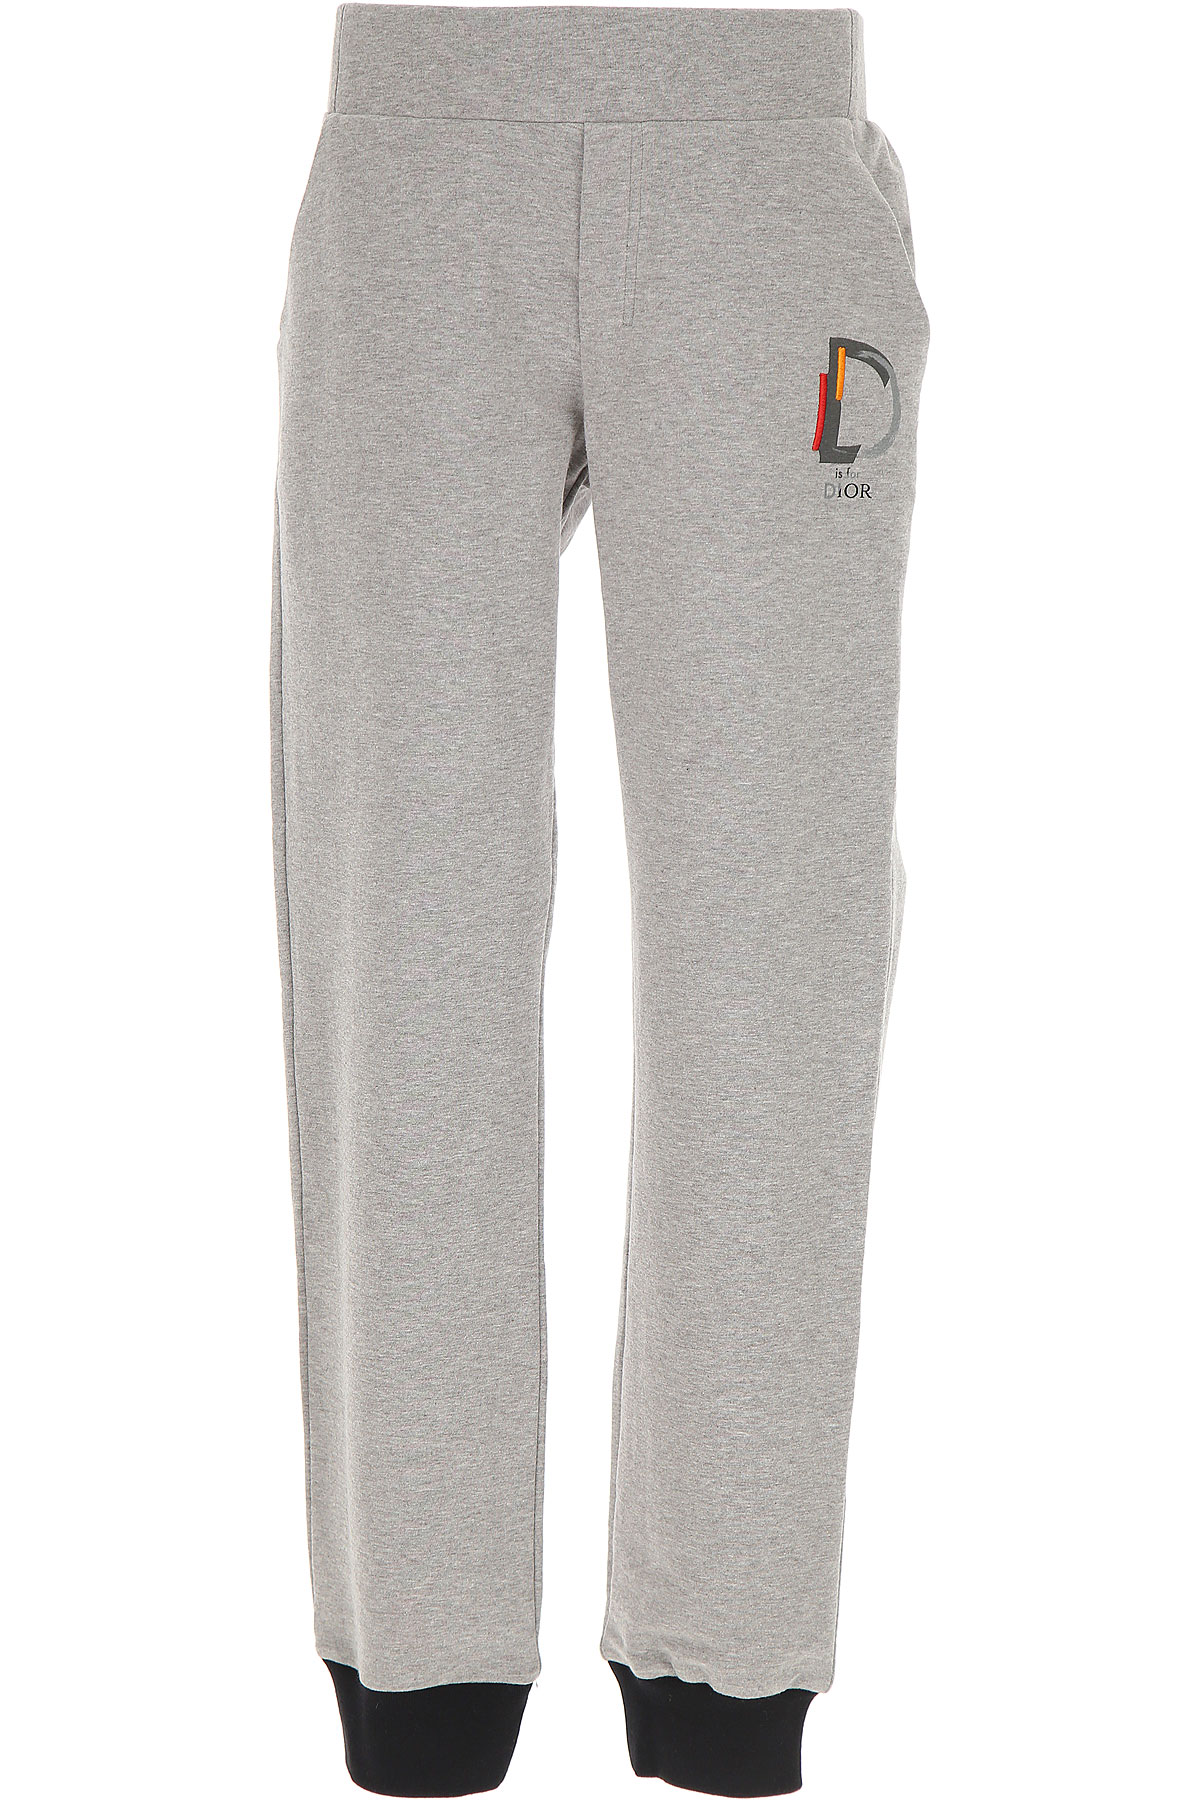 Image of Christian Dior Kids Sweatpants for Boys, Grey, Cotton, 2017, 10Y 14Y 4Y 6Y 8Y